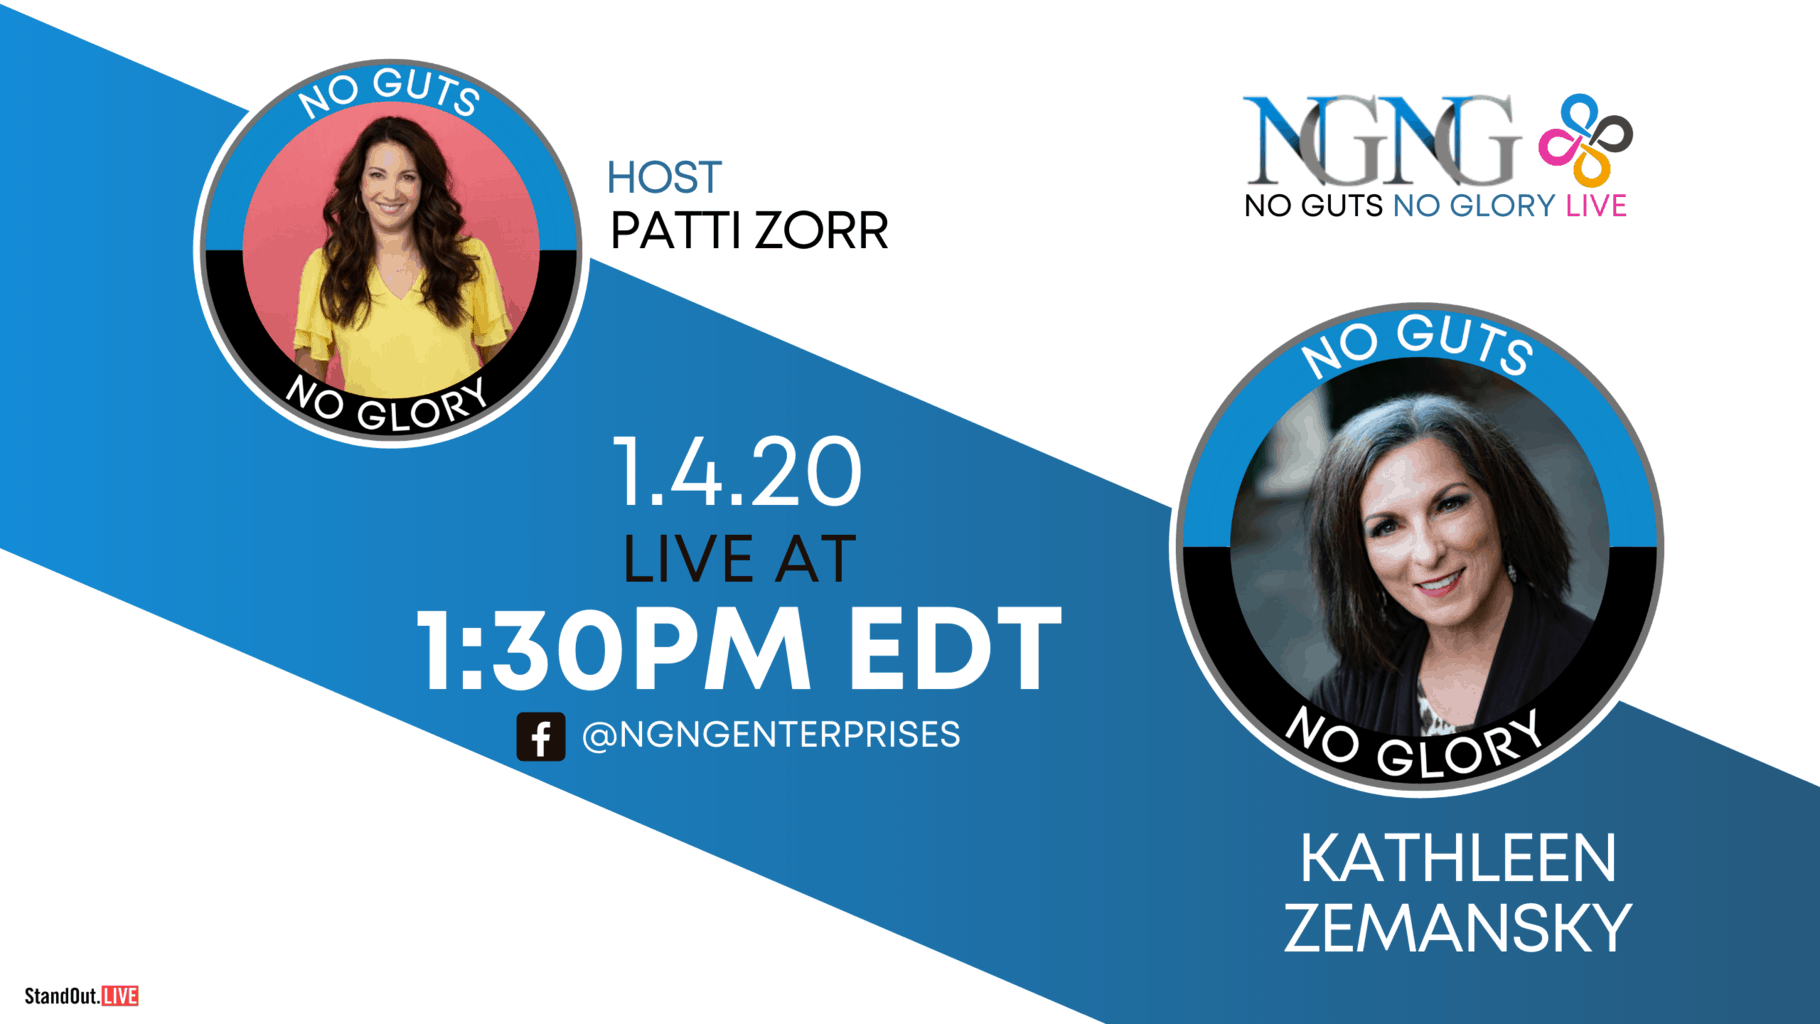 Kathleen Zemansky- NO GUTS NO GLORY LIVE (Twitter, YouTube, Blog)